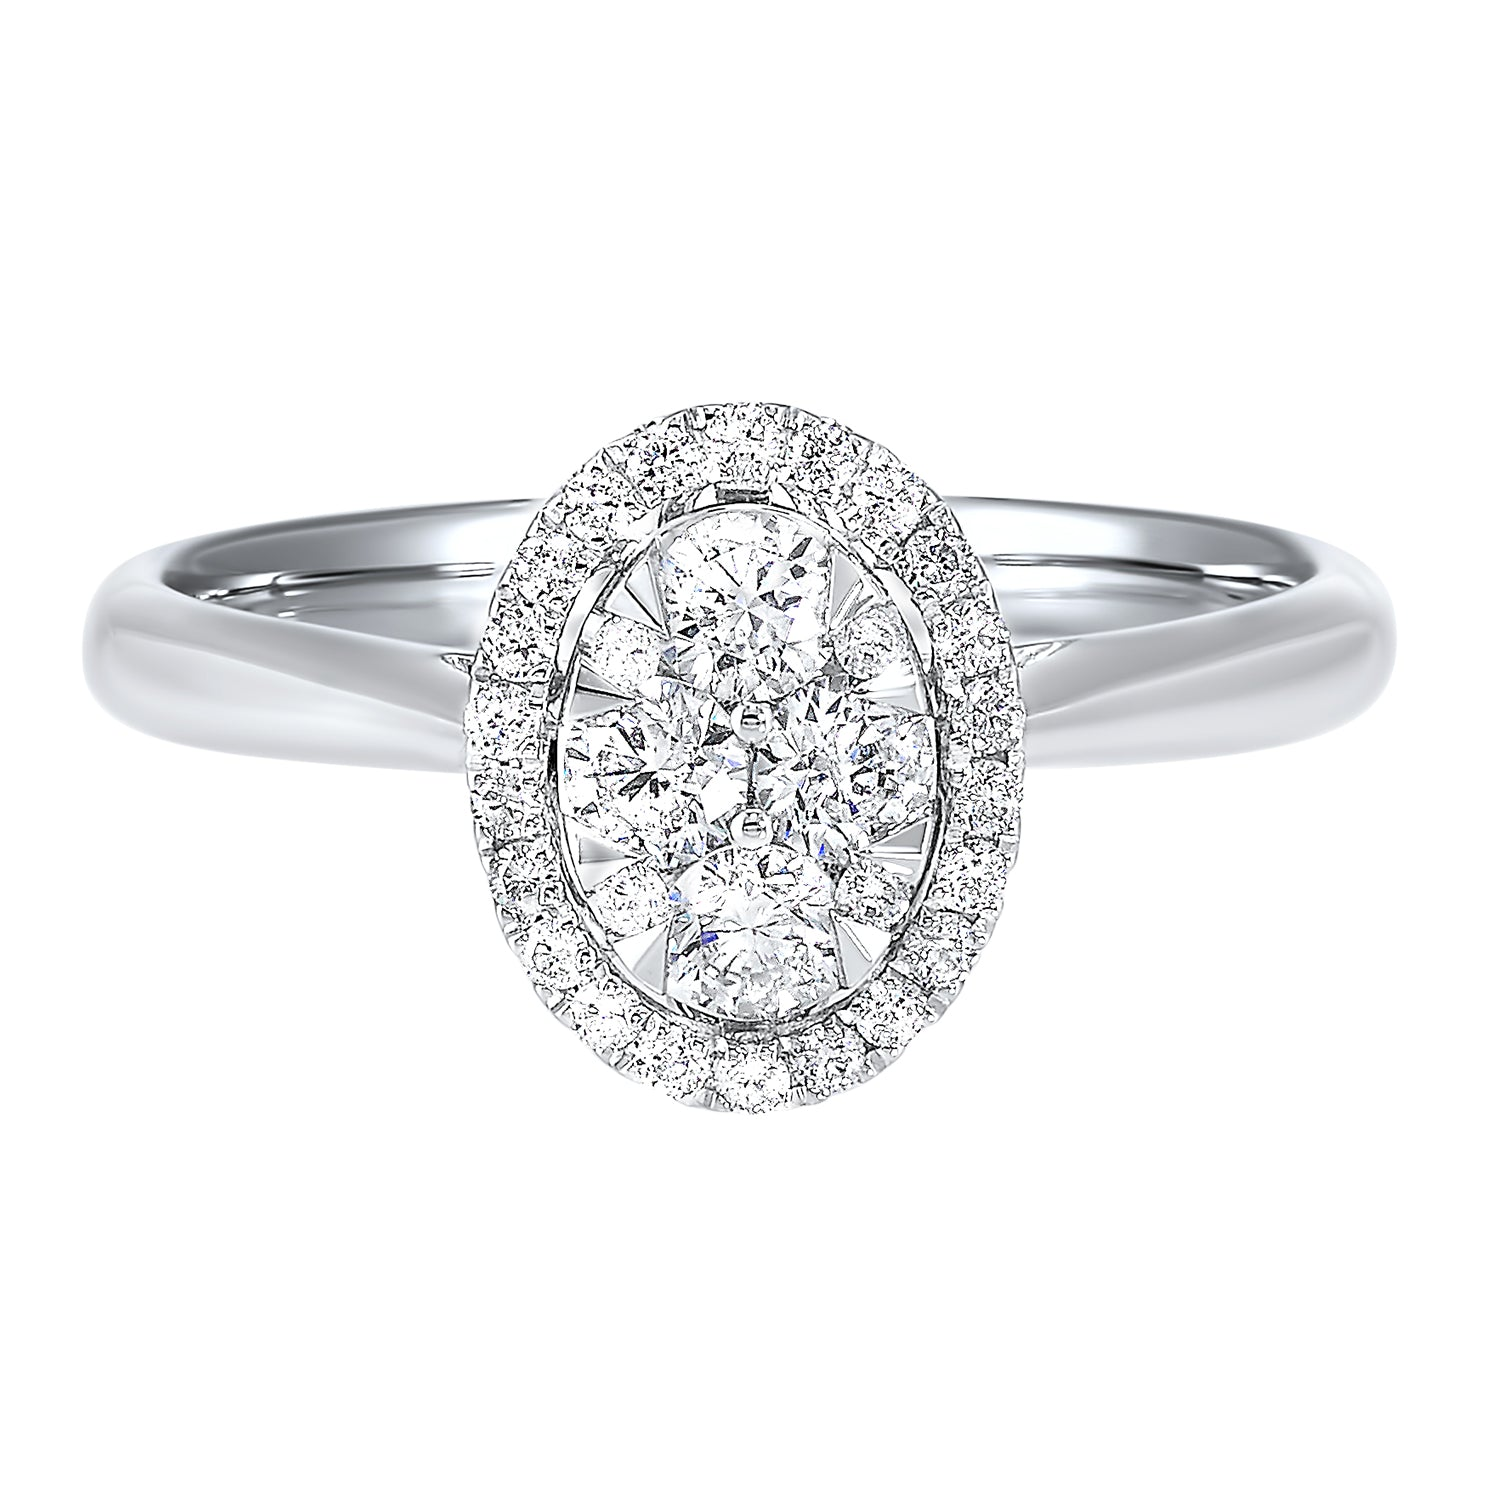 Oval Cluster Diamond Ring - Peter Franklin